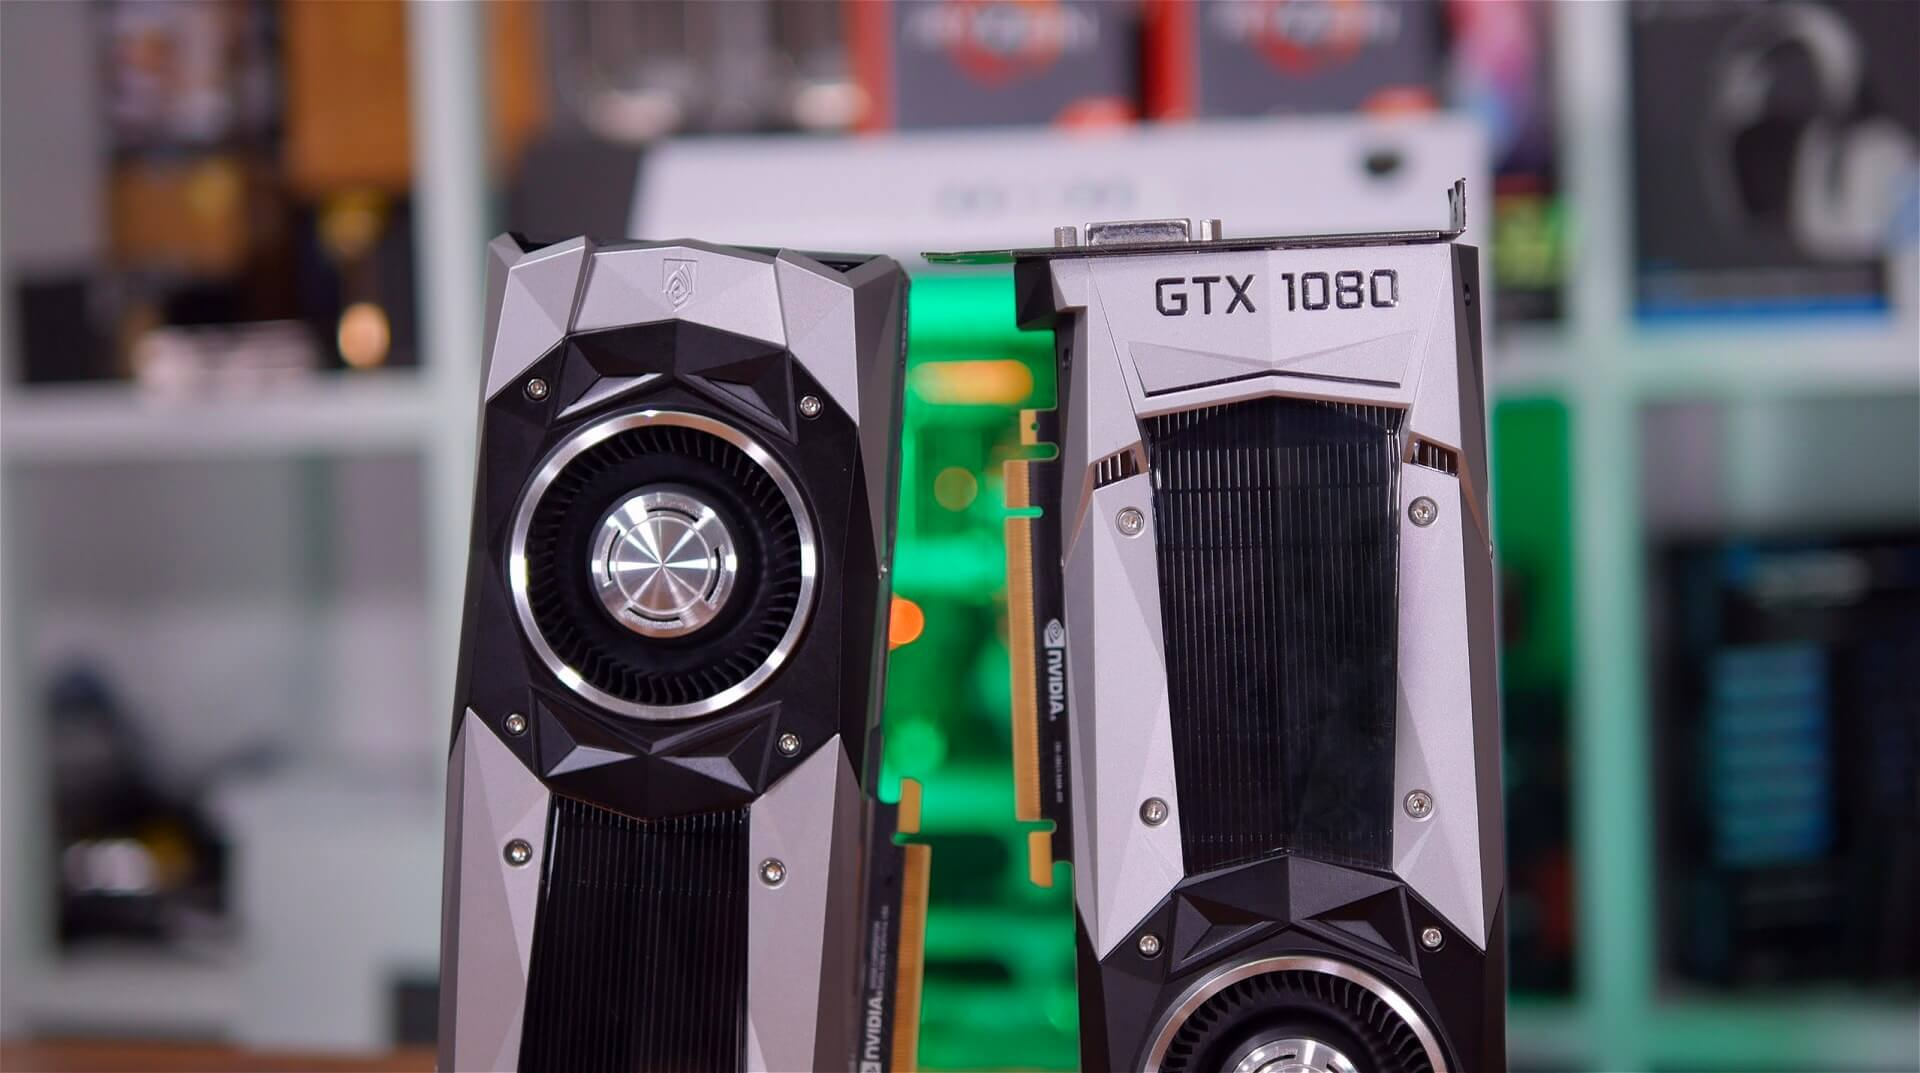 GeForce GTX 1080 Ti vs. RTX 2070 Super vs. Radeon 5700 XT